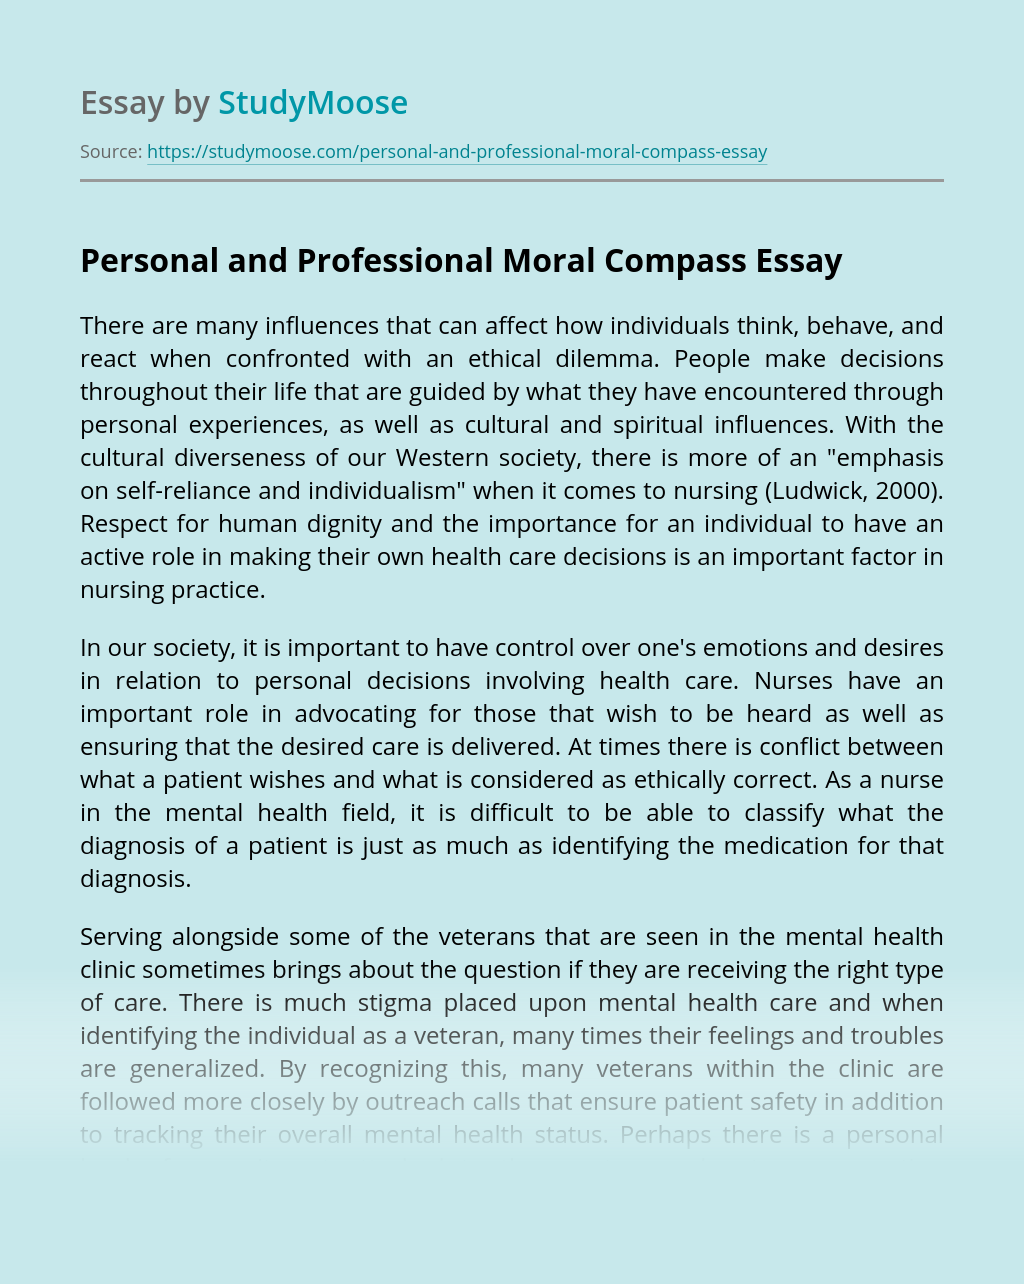 Personal and Professional Moral Compass